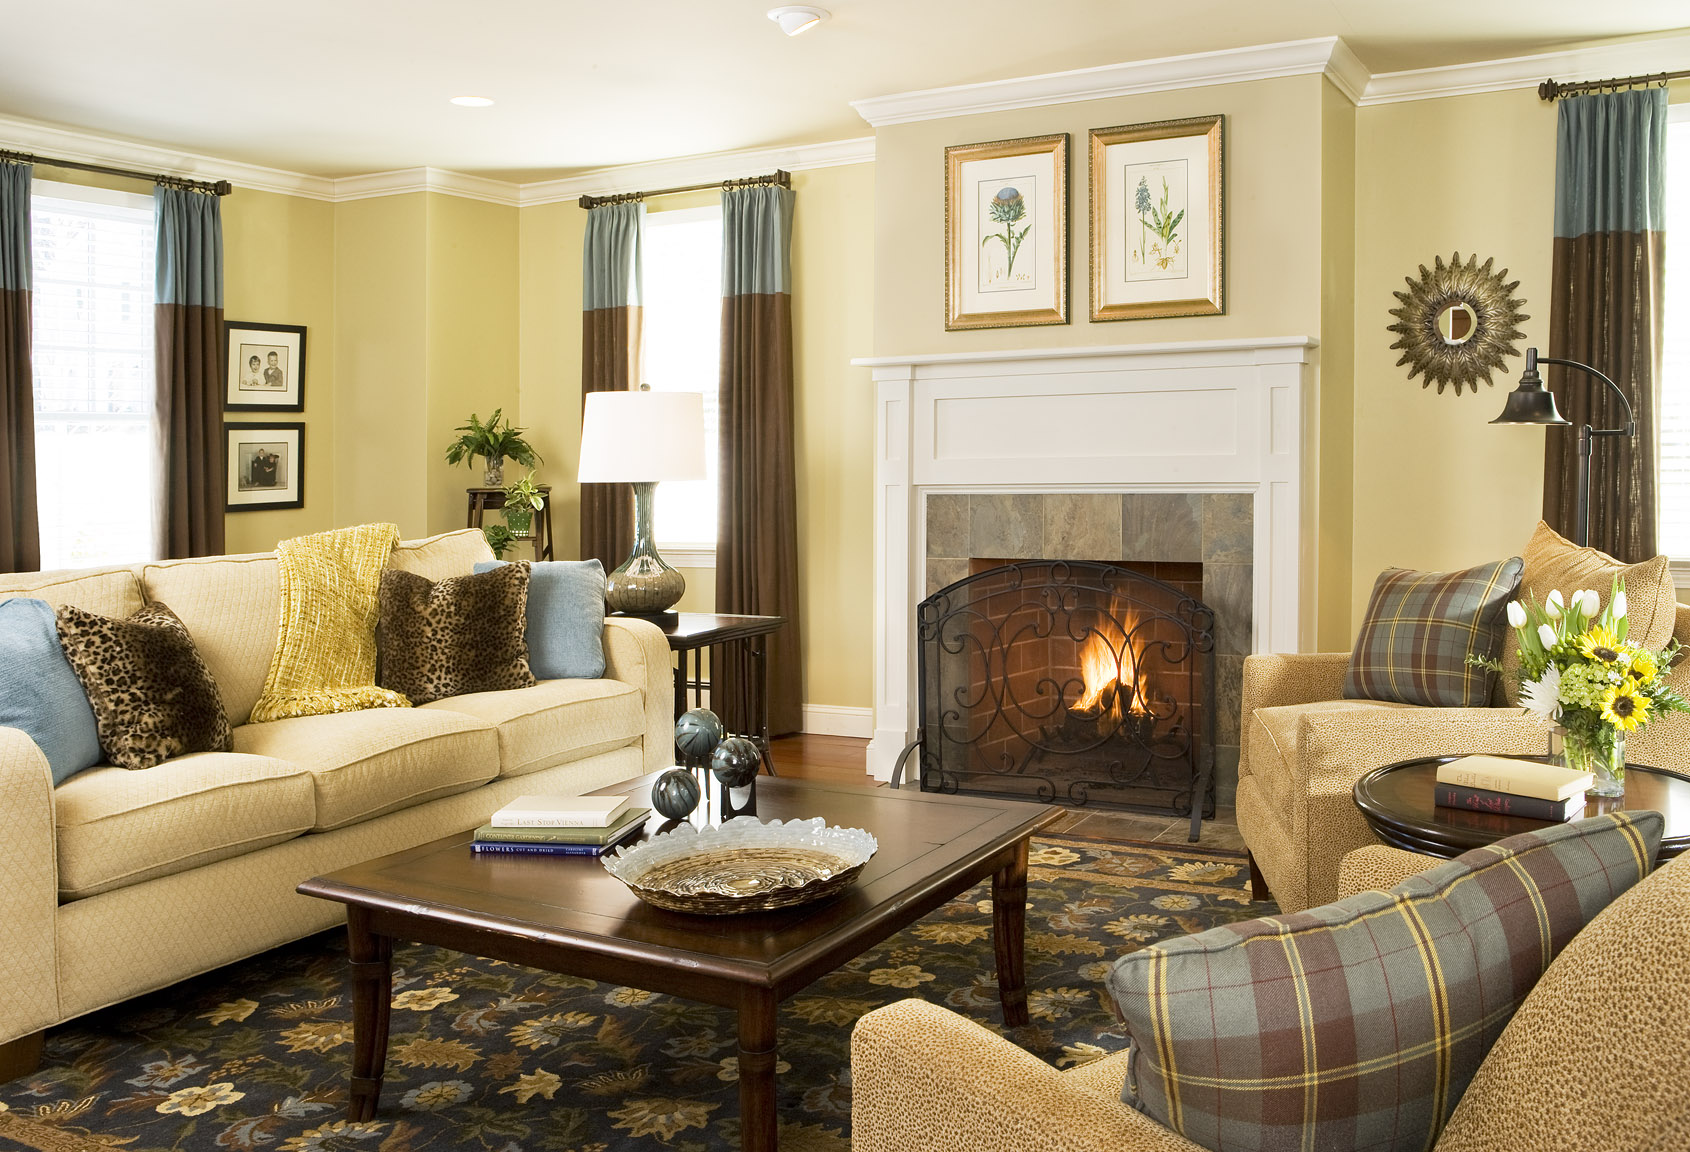 Let s talk color decorating den interiors blog Yellow living room decorating ideas